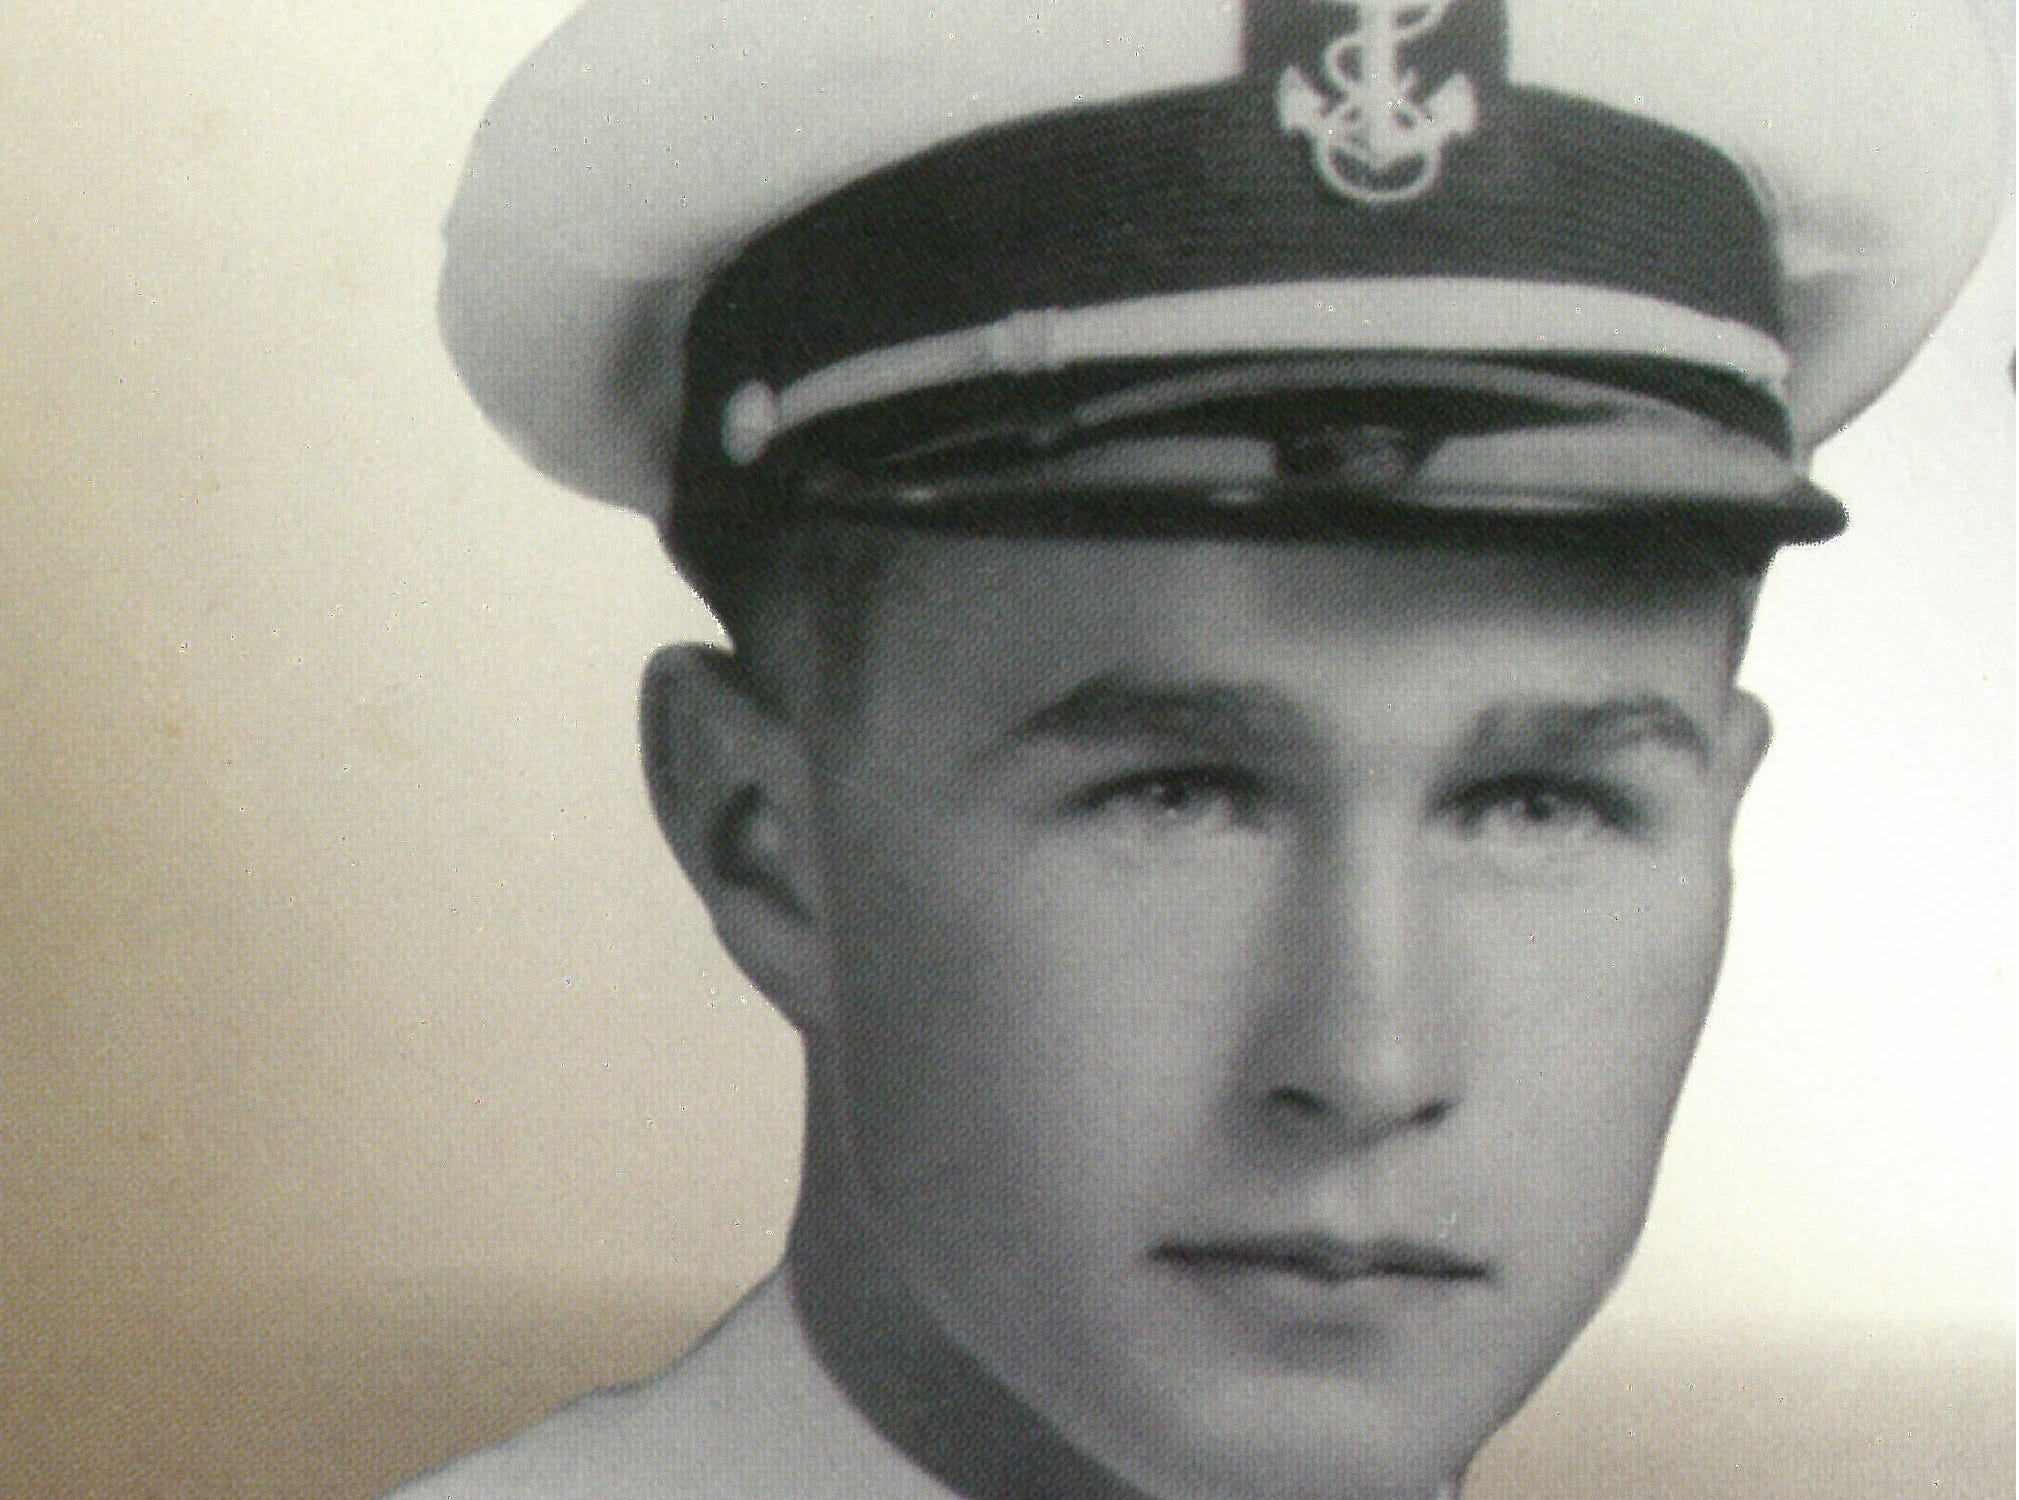 President George H.W. Bush was the youngest Navy pilot when he completed his training at Naval Air Station Corpus Christi.